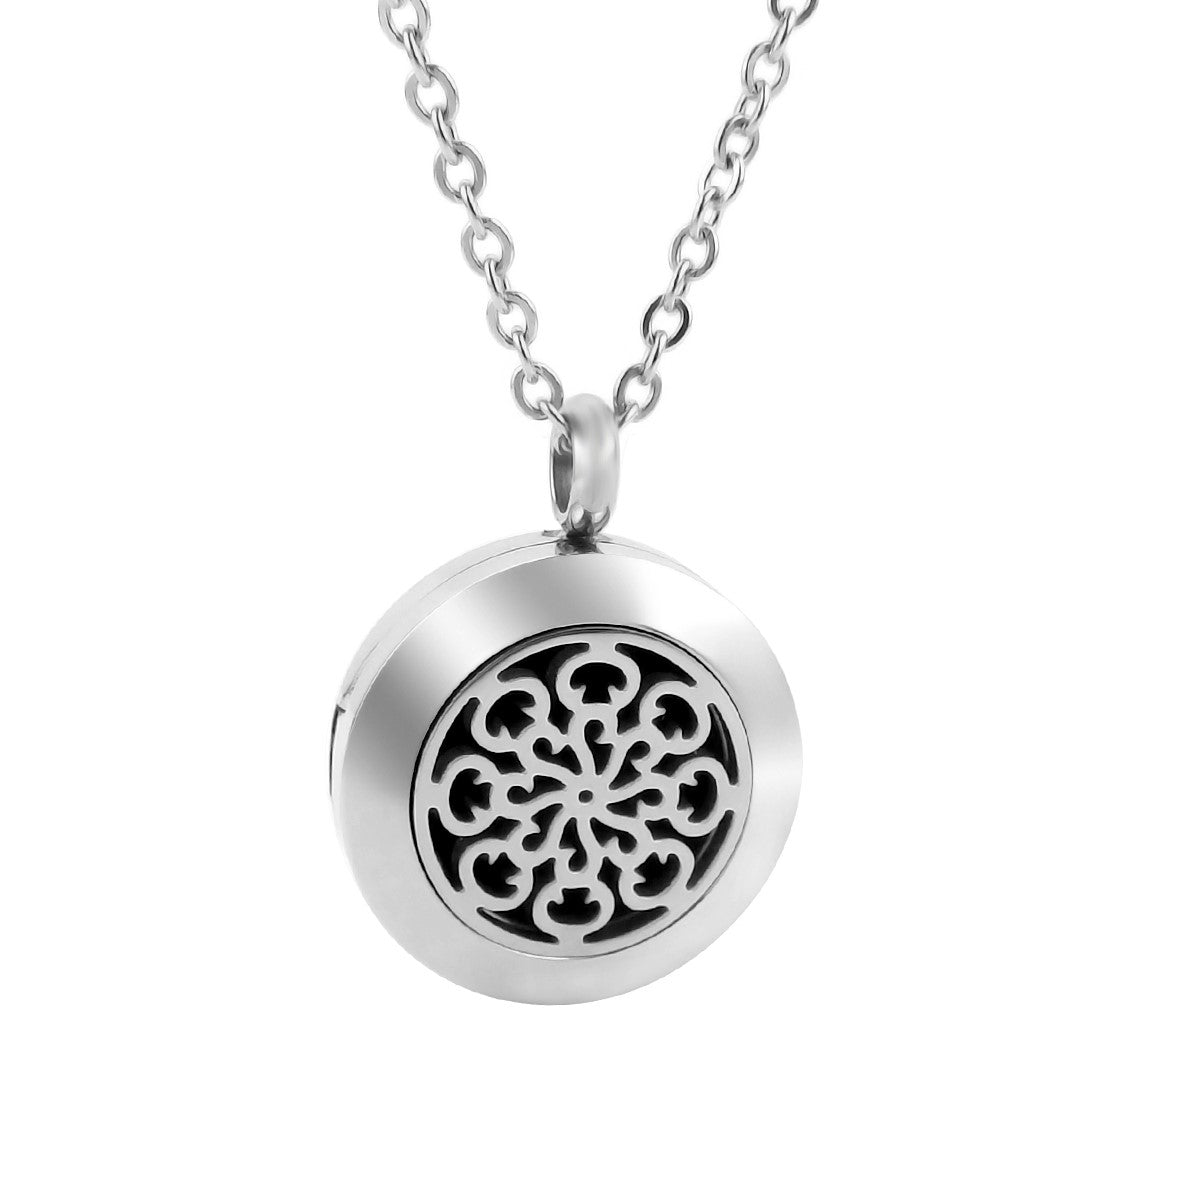 Petite Diffuser Necklace - Small Spiral Pattern